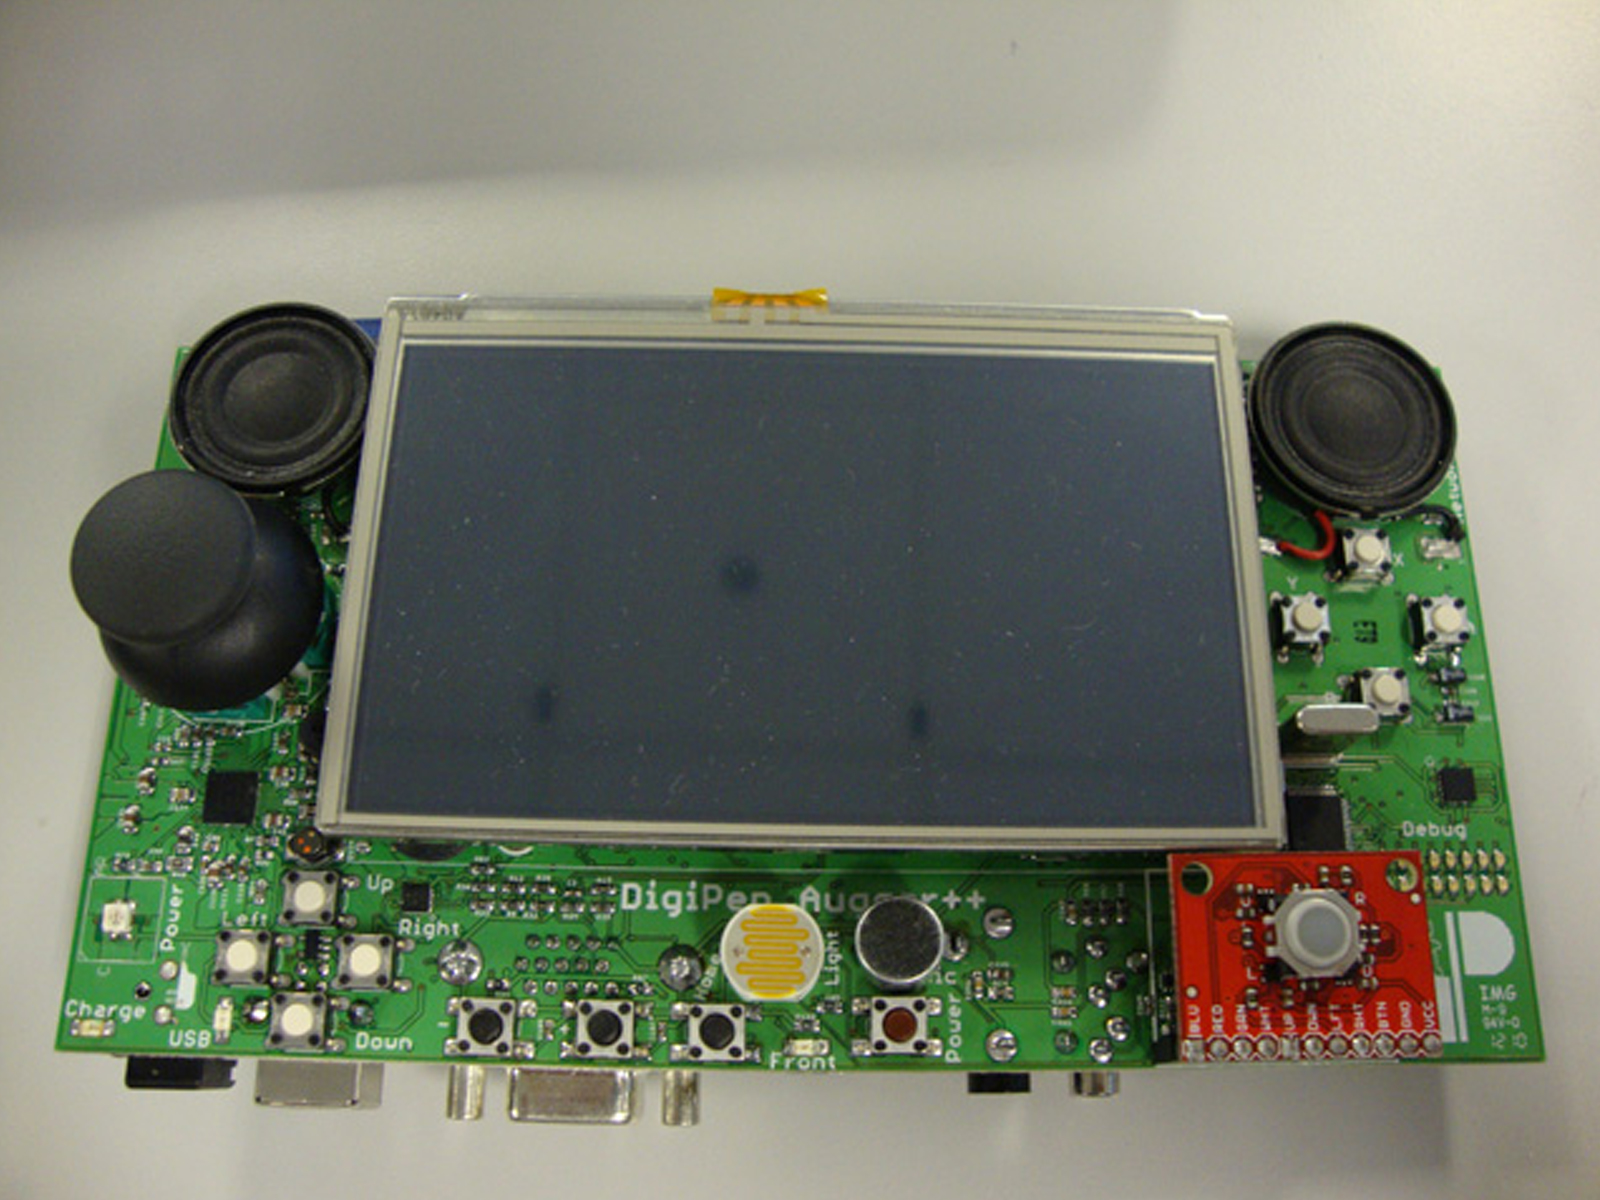 Picture of the Augger, an original handheld gaming device DigiPen alumnus Chris Clark helped design and build